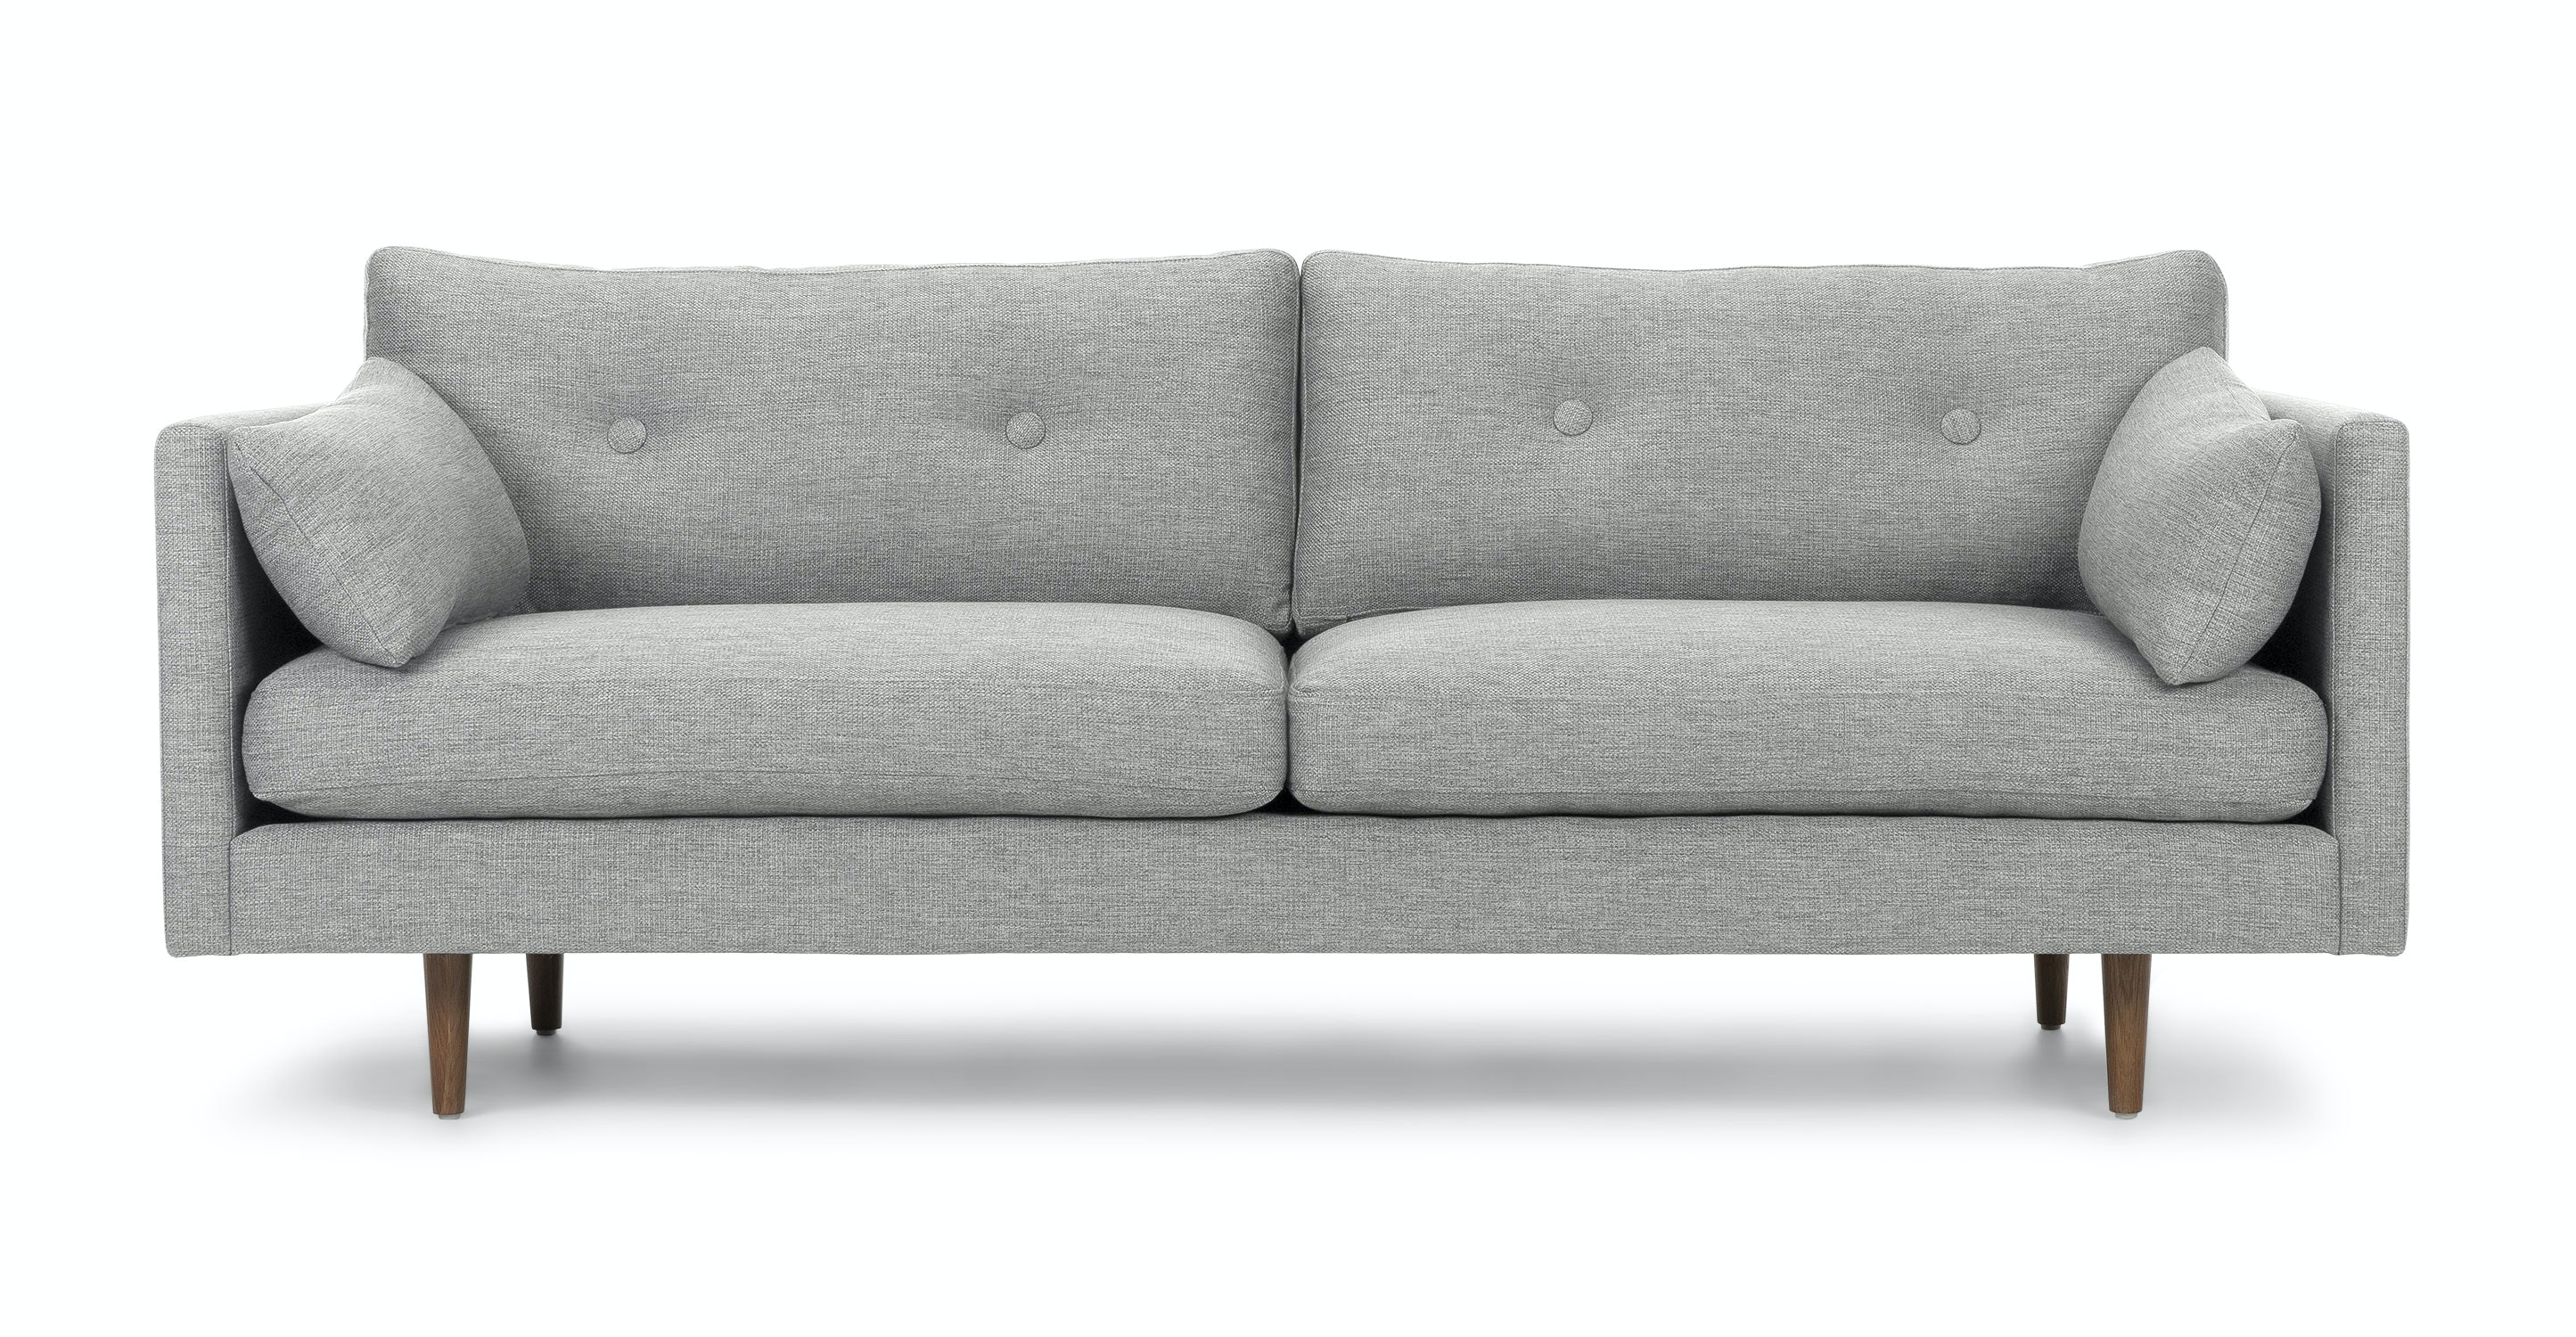 anton gravel gray sofa  sofas  article  modern midcentury and  - anton gravel gray sofa  sofas  article  modern midcentury andscandinavian furniture